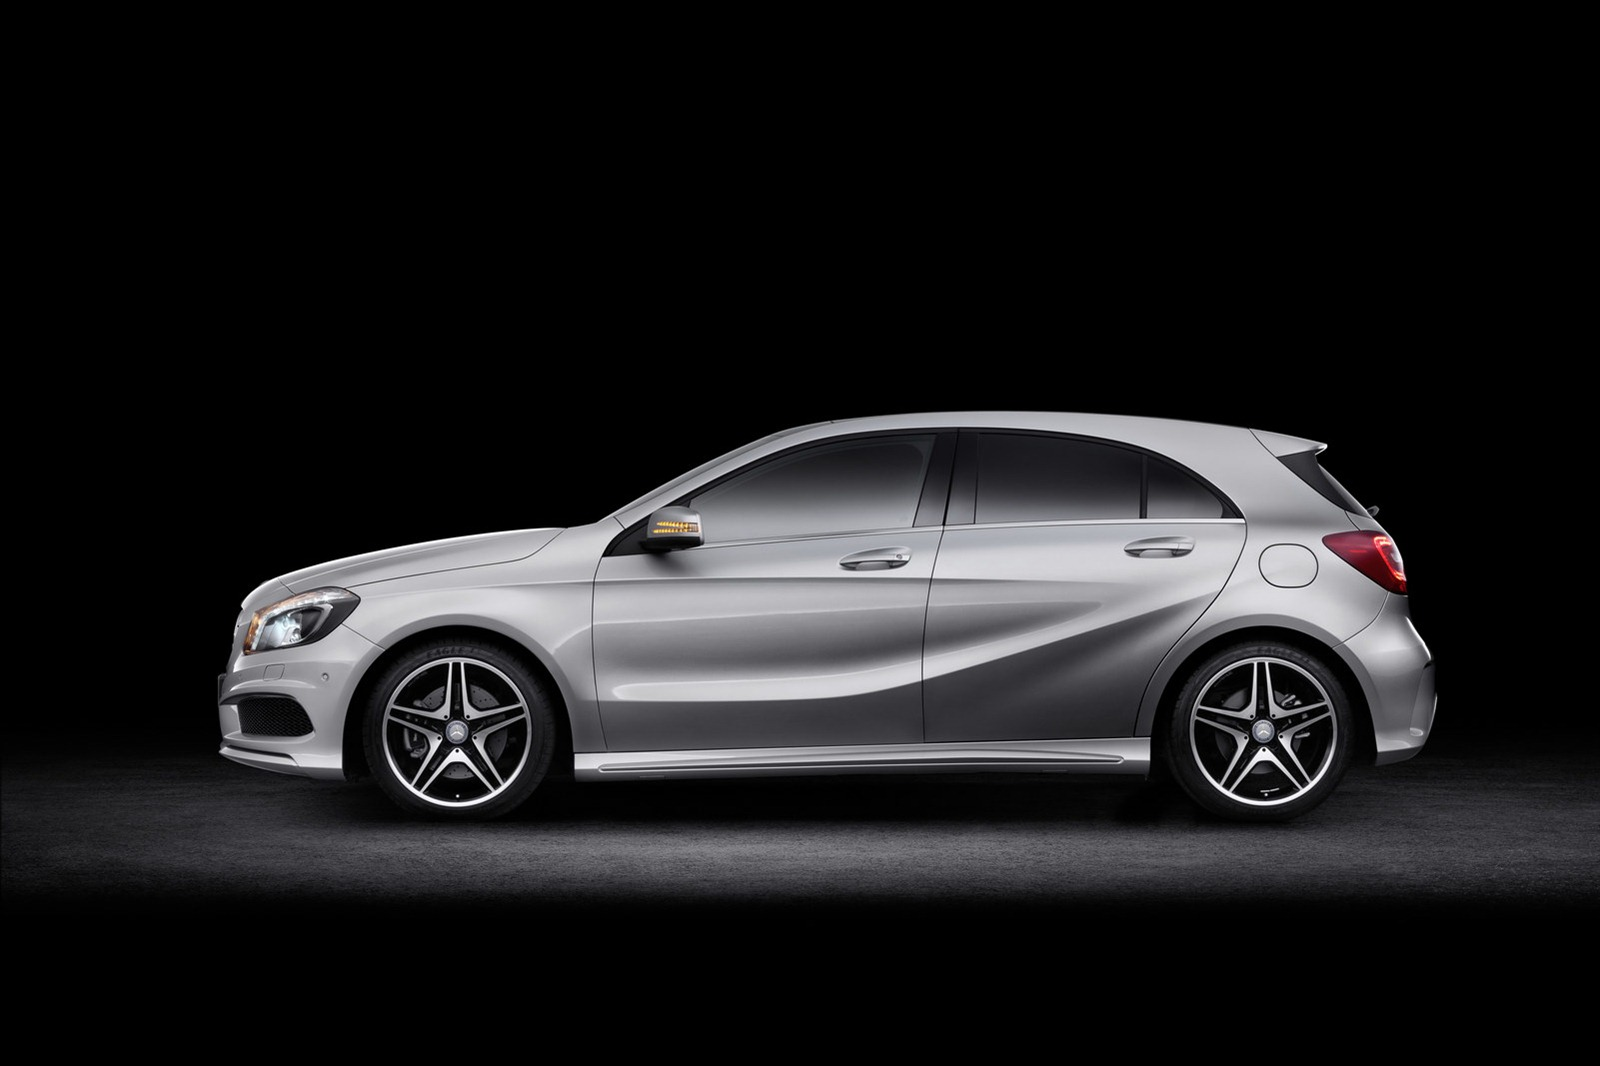 2012 mercedes benz a class new photos released autoevolution for Mercedes benz a class